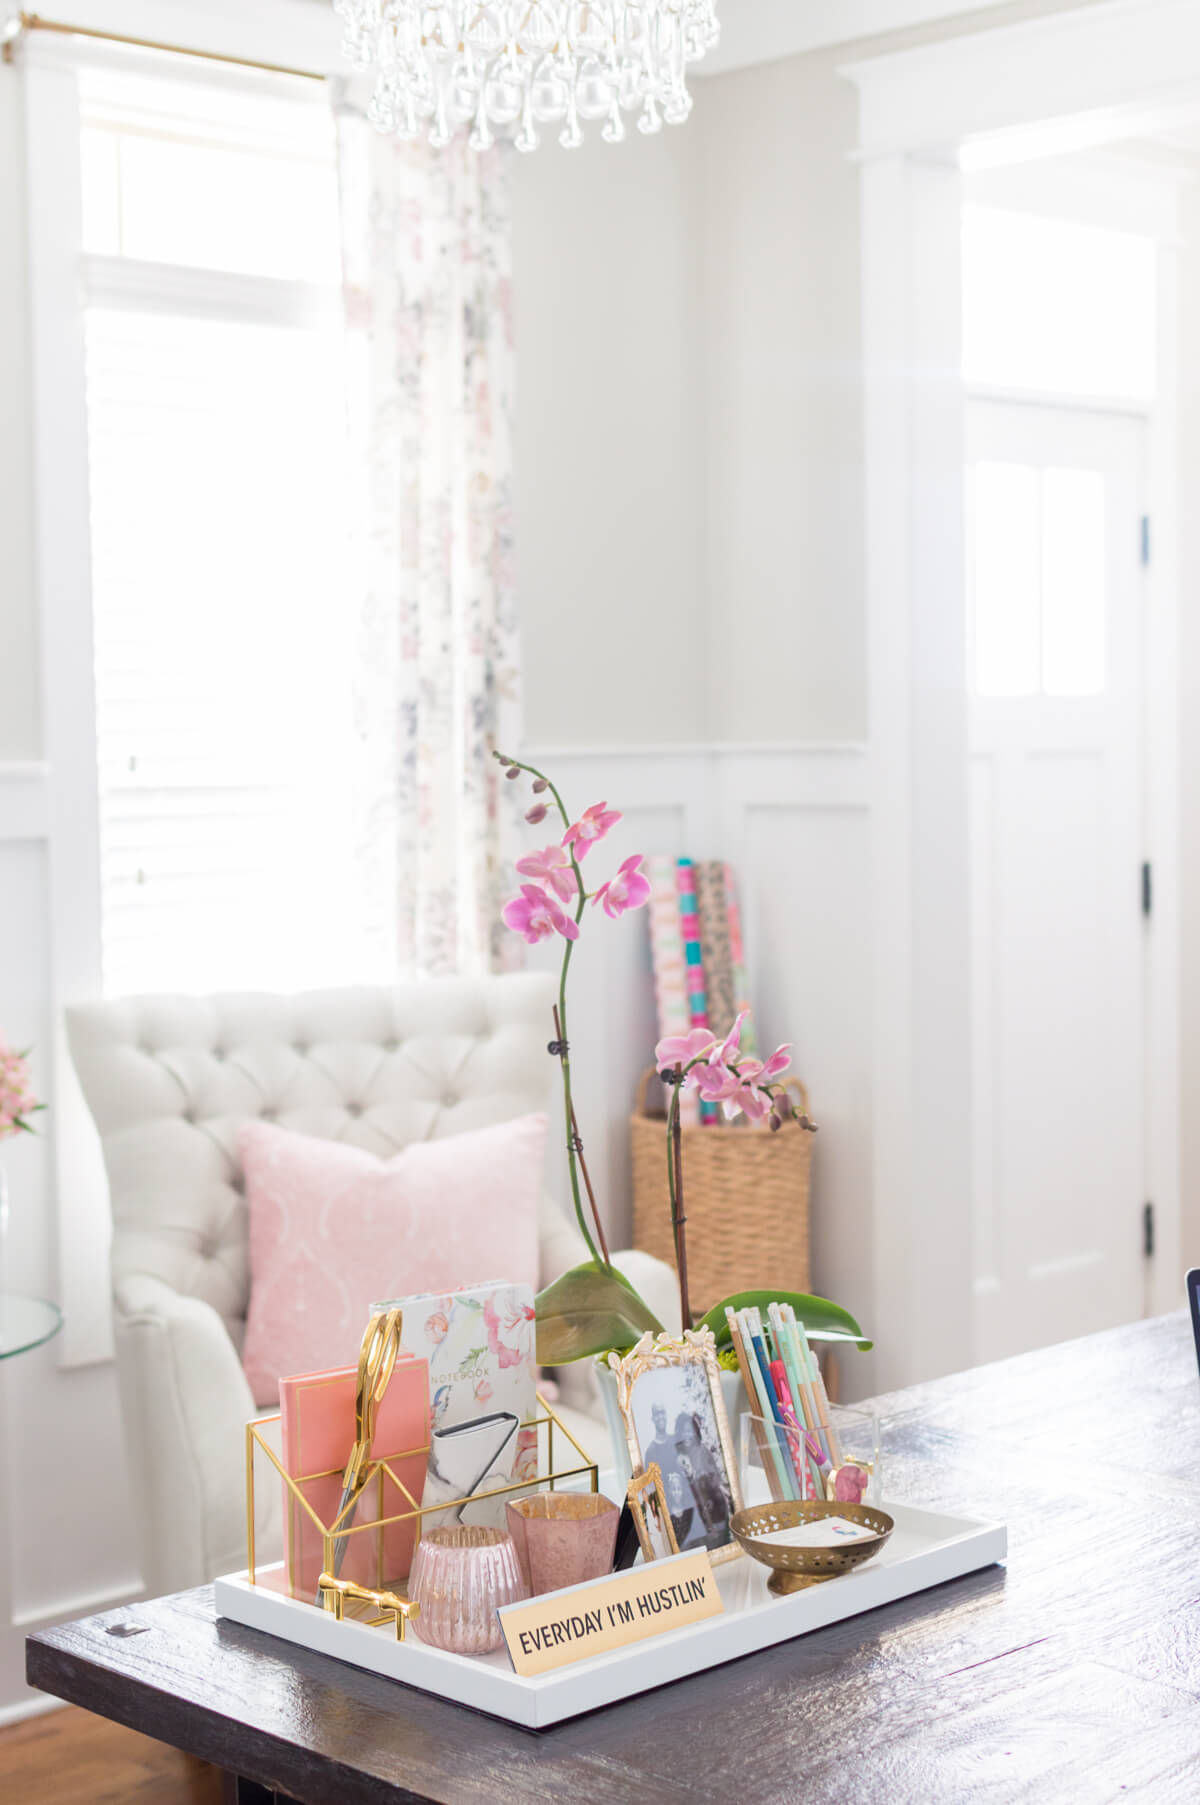 Chic And Girly Home Office With Farmhouse Trestle Table DIY Gold Chandelier Tufted Arm